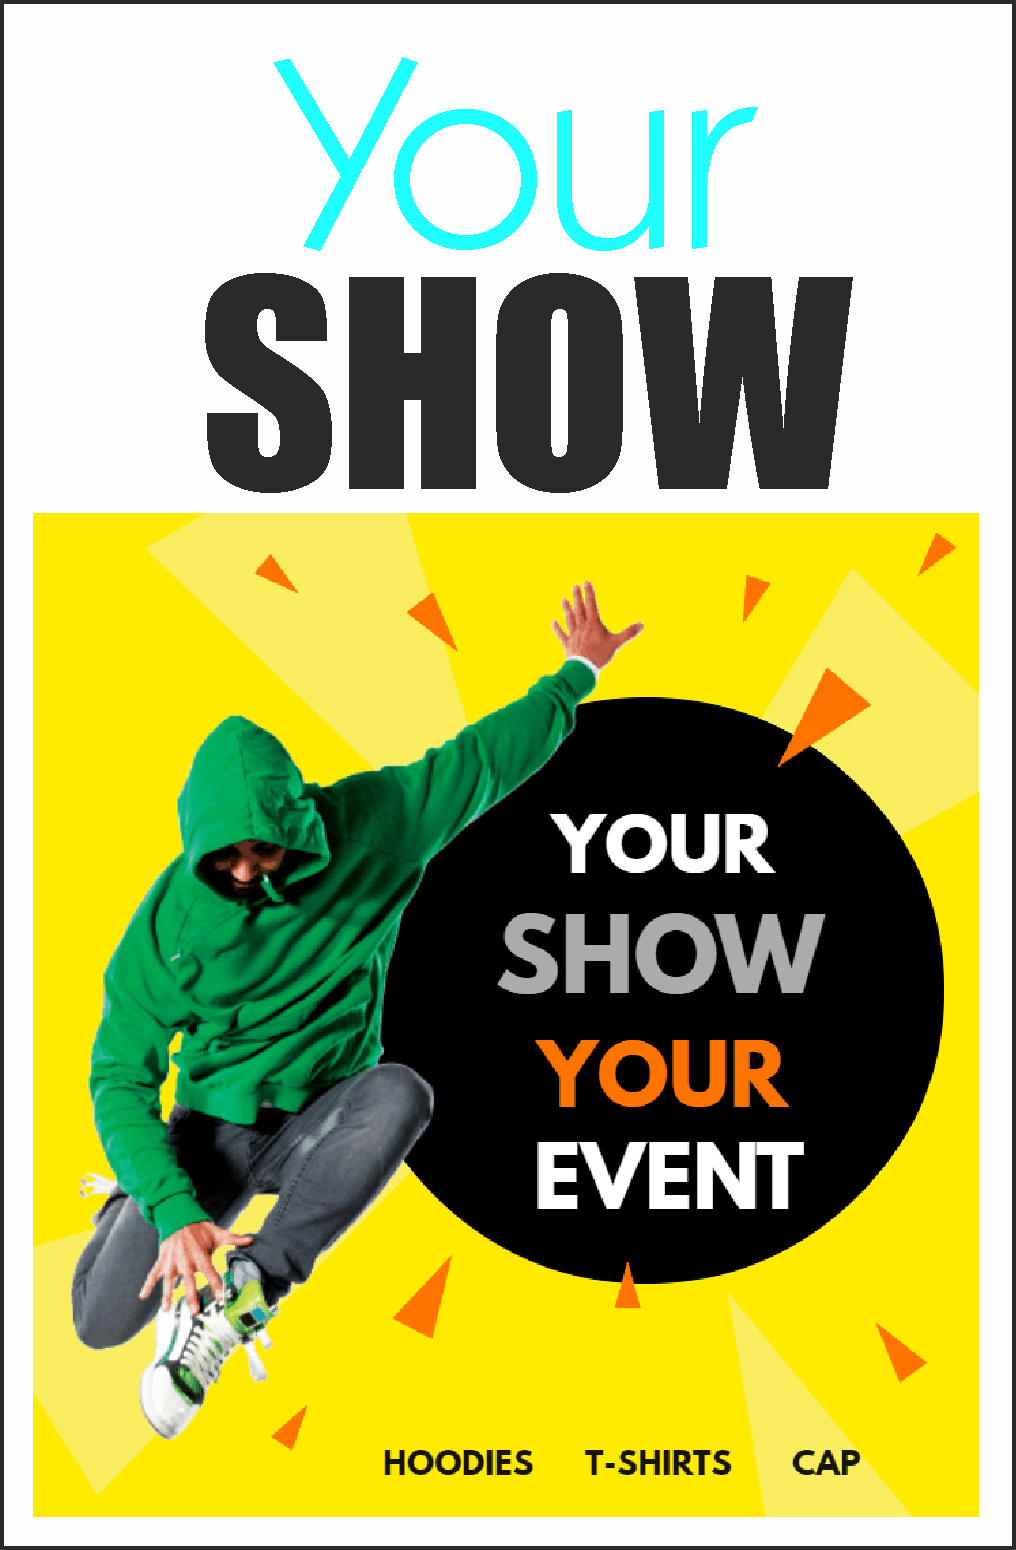 your show event new